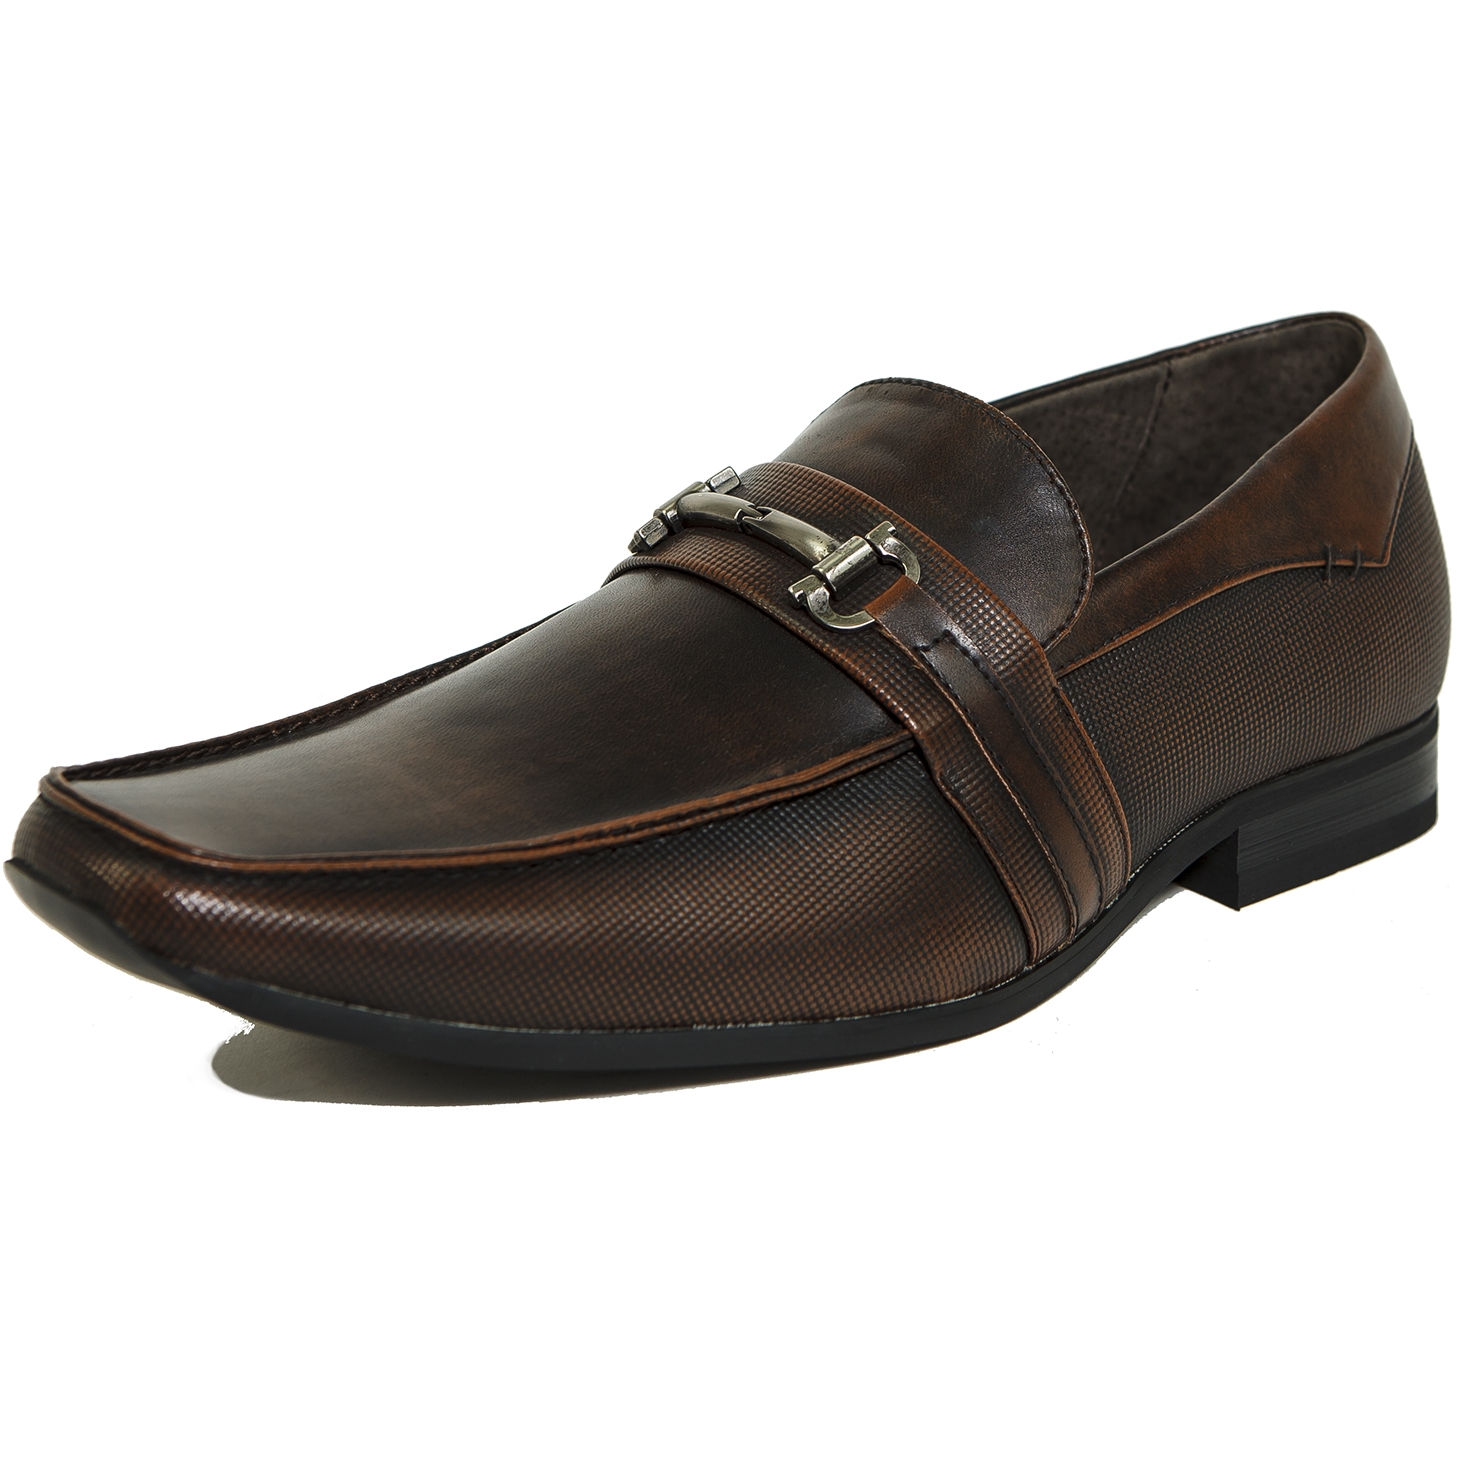 Mens Narrow Casual Shoes